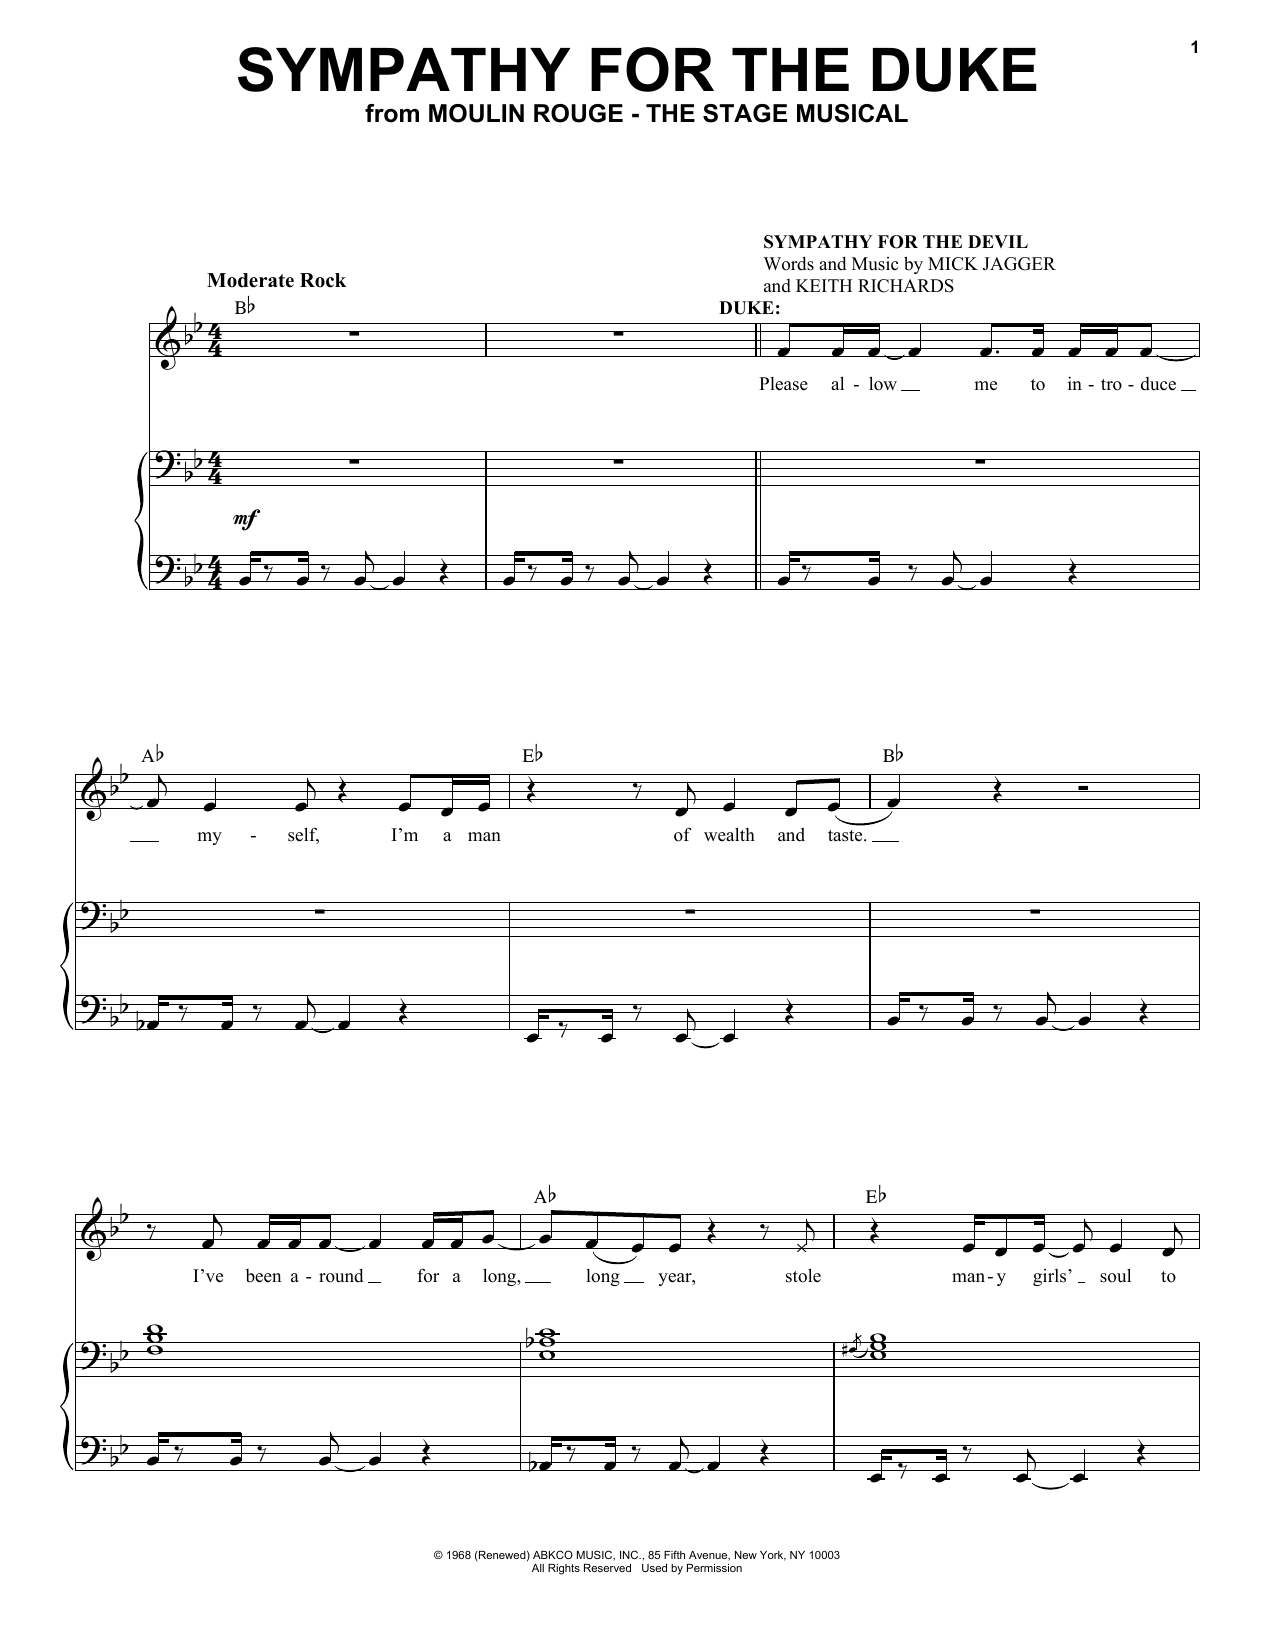 Moulin Rouge! The Musical Cast Sympathy For The Duke (from Moulin Rouge! The Musical) sheet music notes and chords. Download Printable PDF.